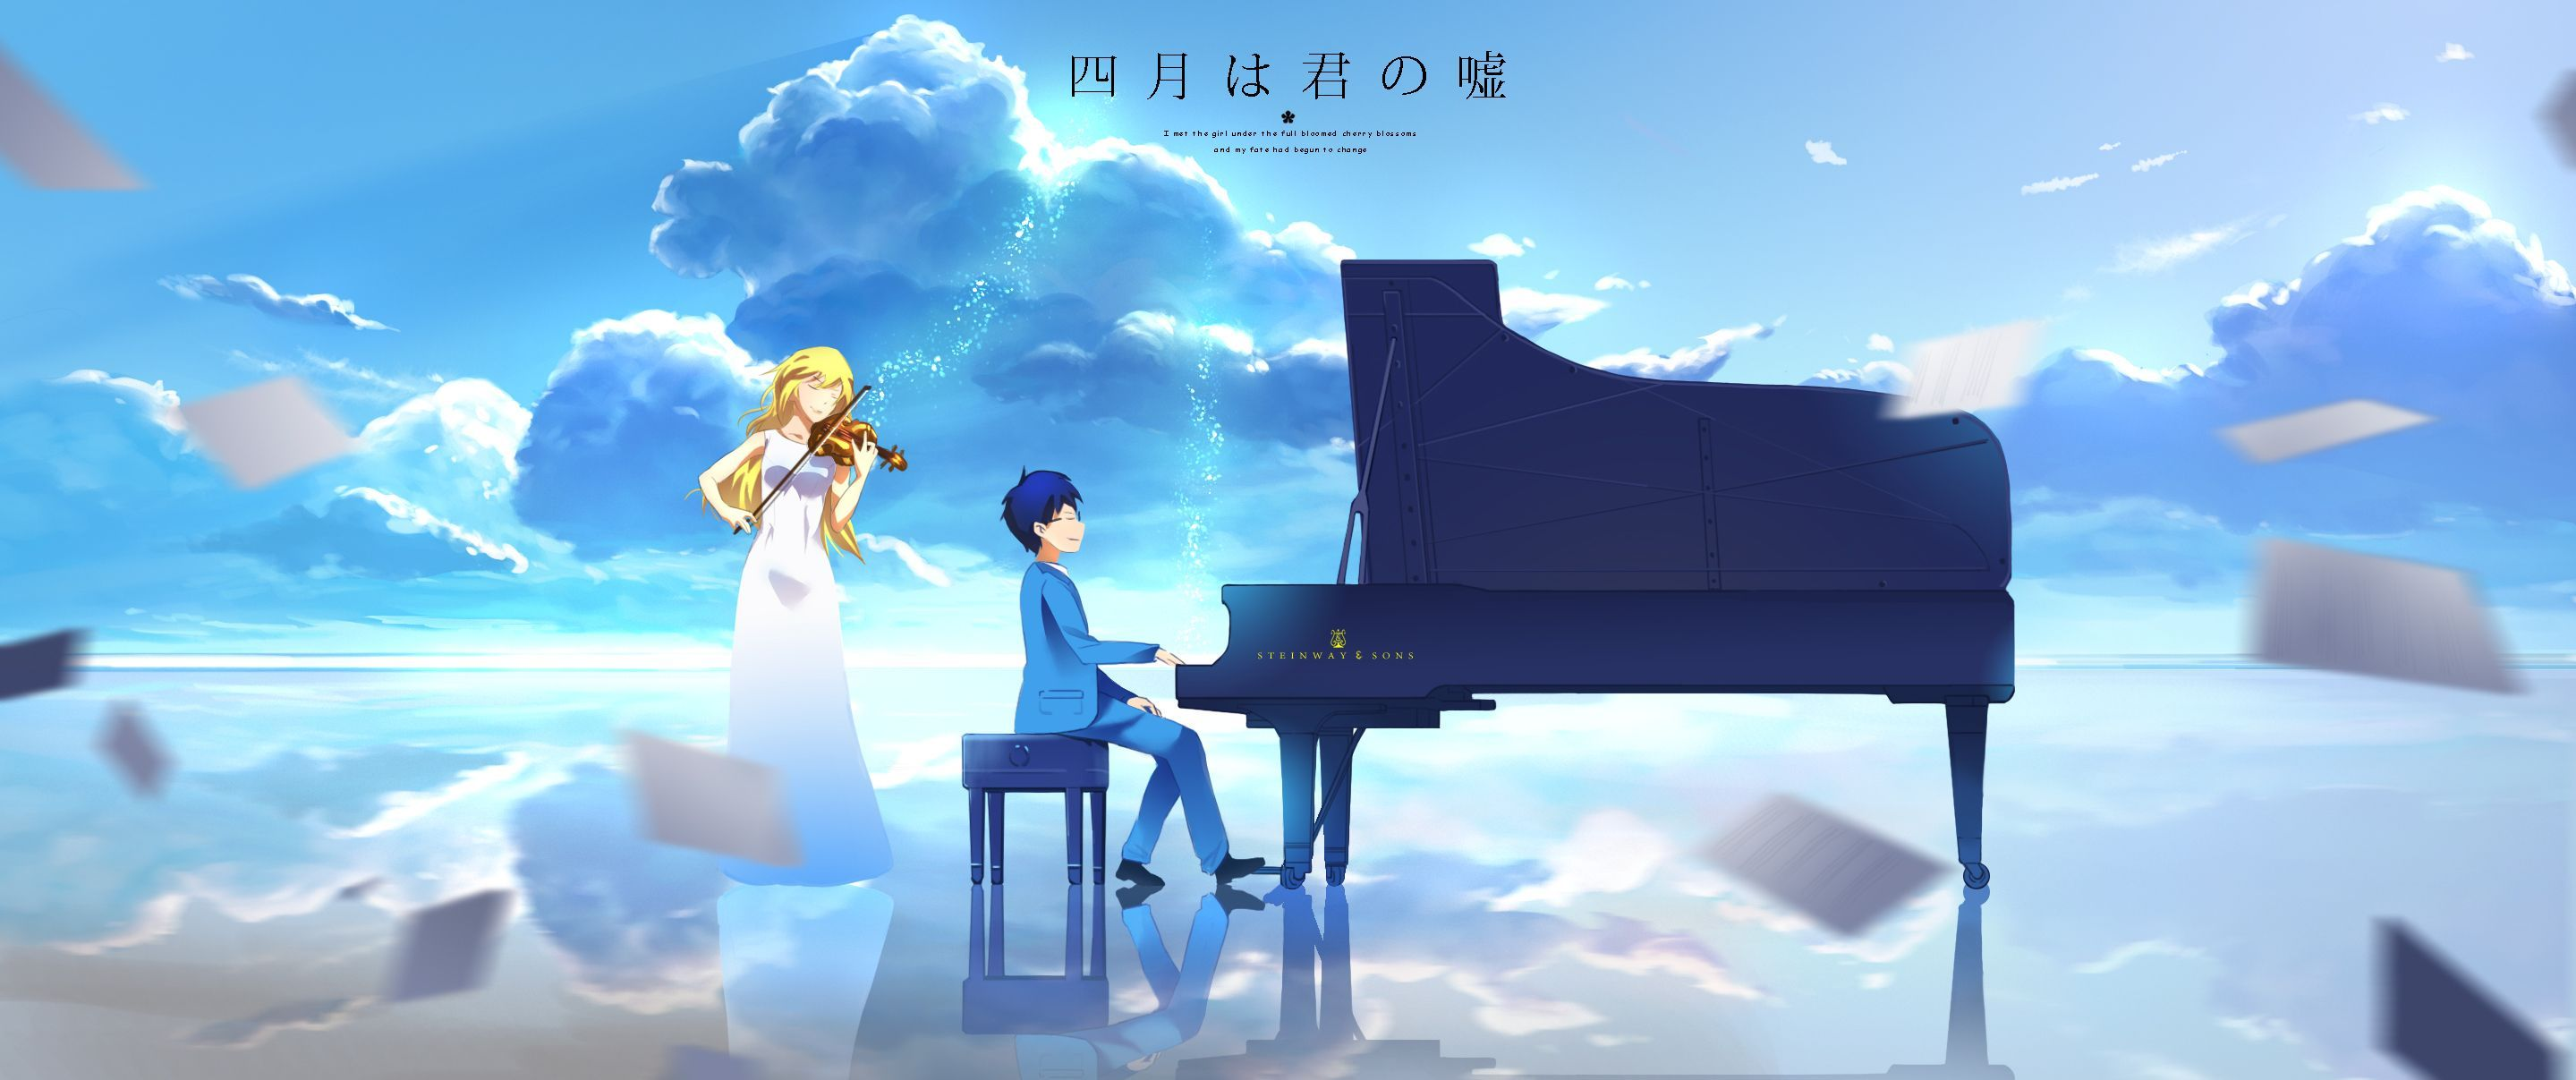 Your Lie In April Piano Wallpapers Top Free Your Lie In April Piano Backgrounds Wallpaperaccess